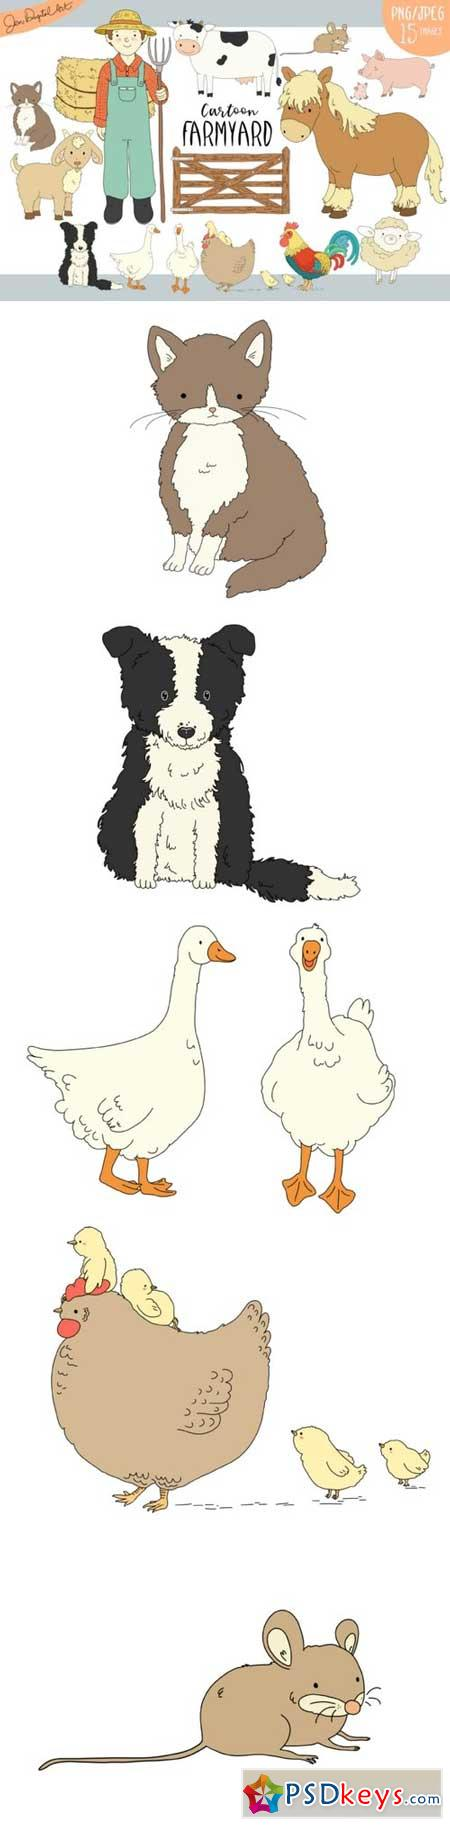 Cartoon Farmyard Clip Art Illustrations 866430